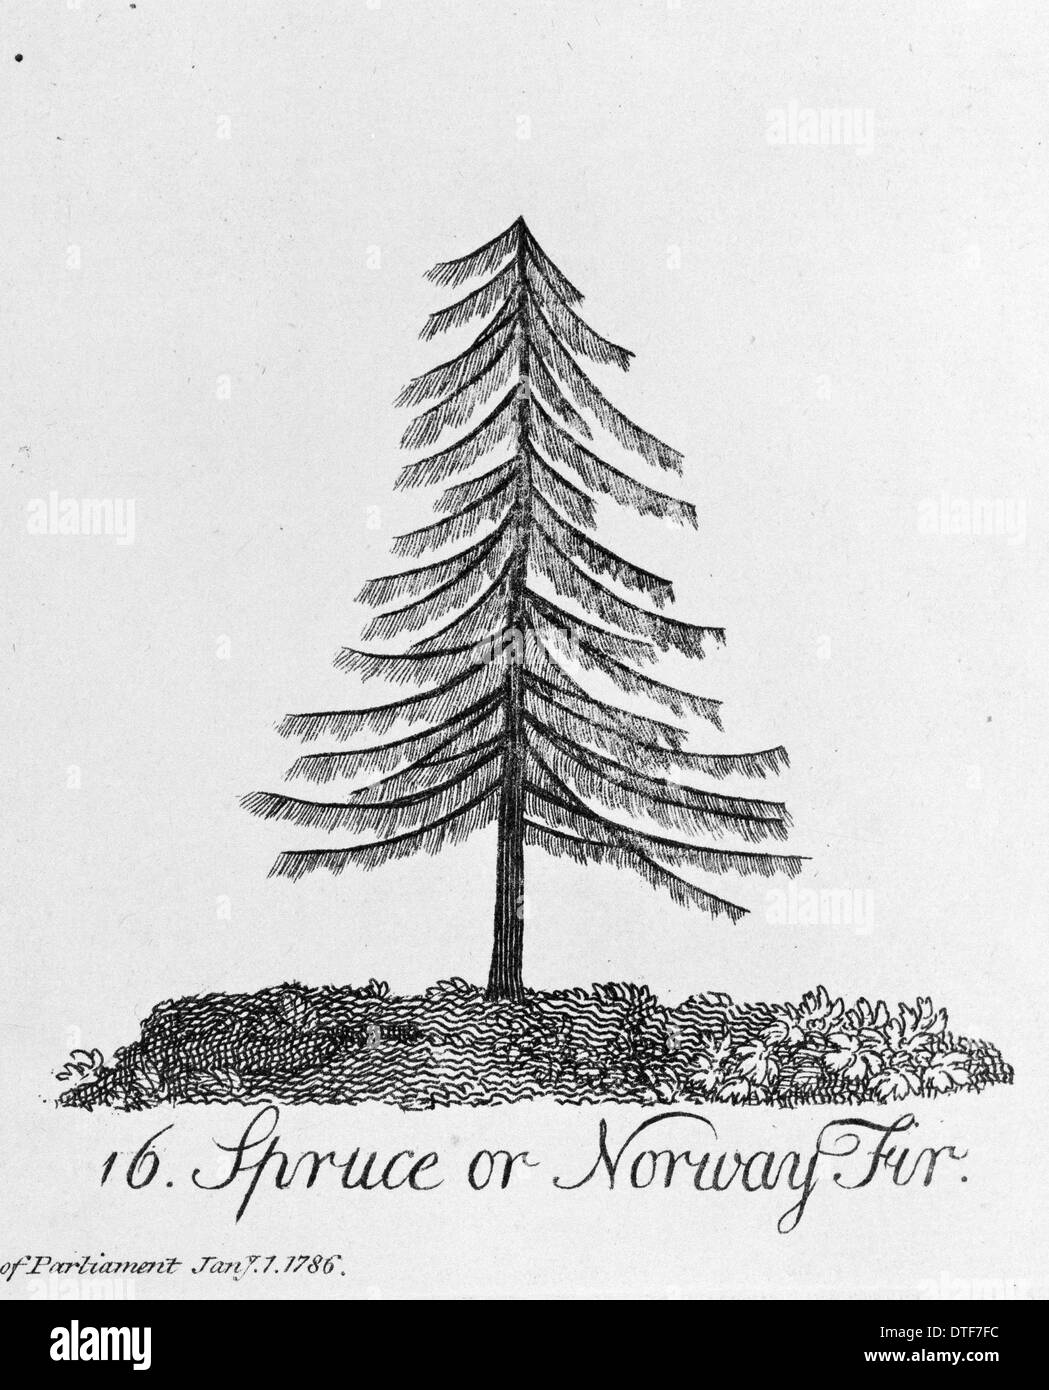 Spruce or Norway Fir - Stock Image